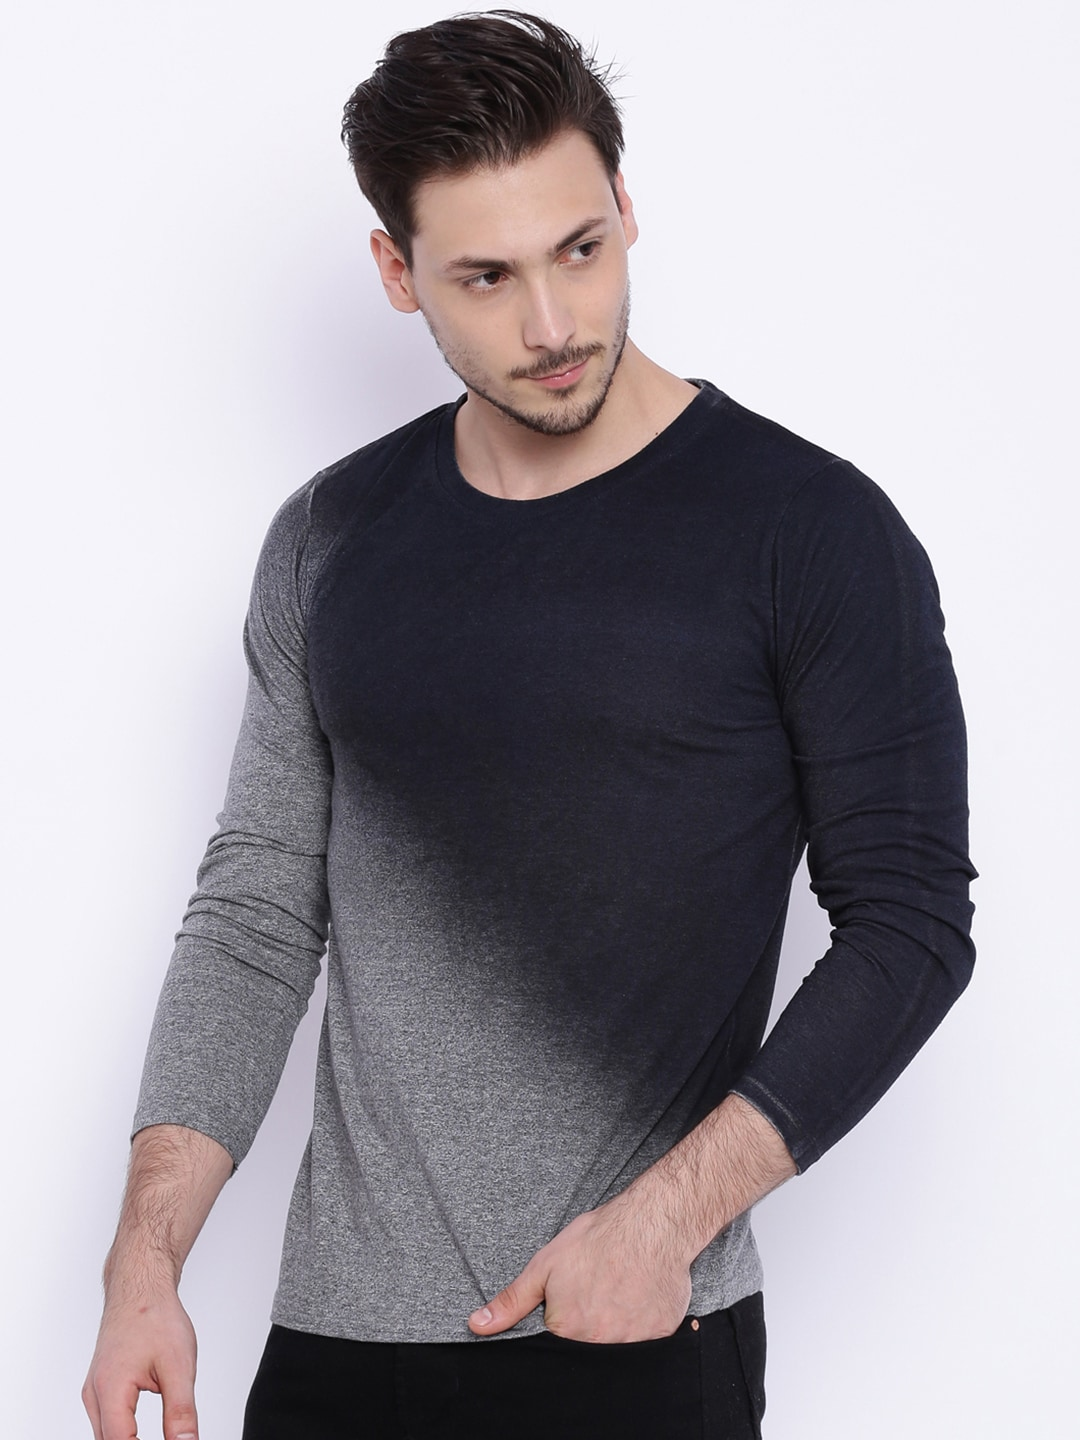 Long sleeve t shirts for men online artee shirt for What is a long sleeve t shirt